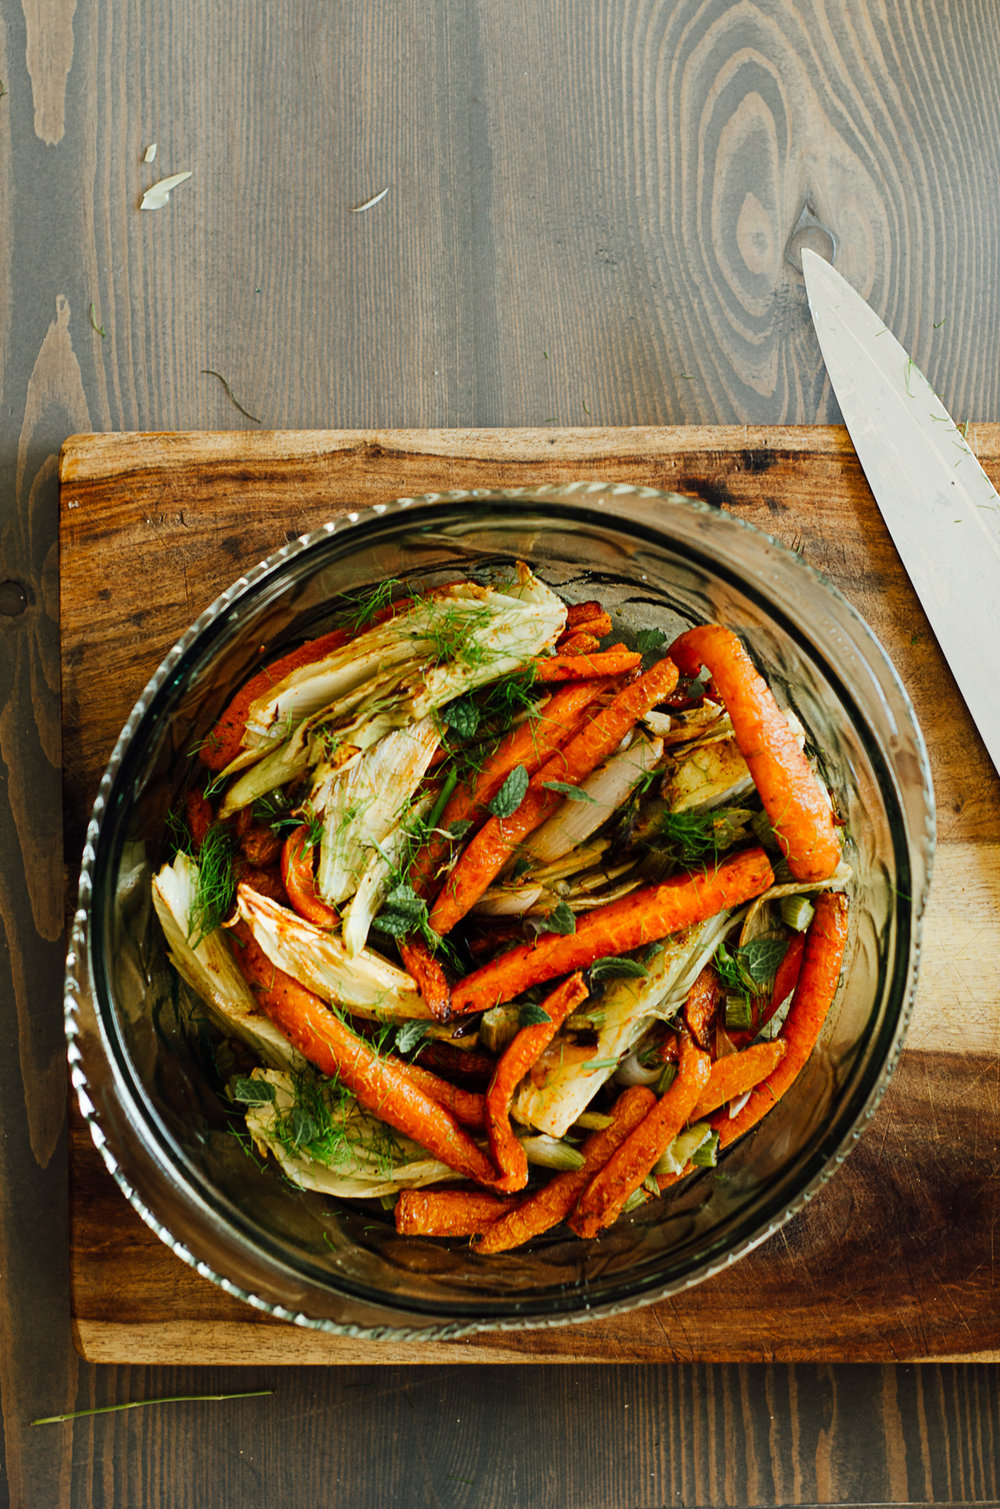 Simple roasted vegetable side dish | The Nomadic Wife